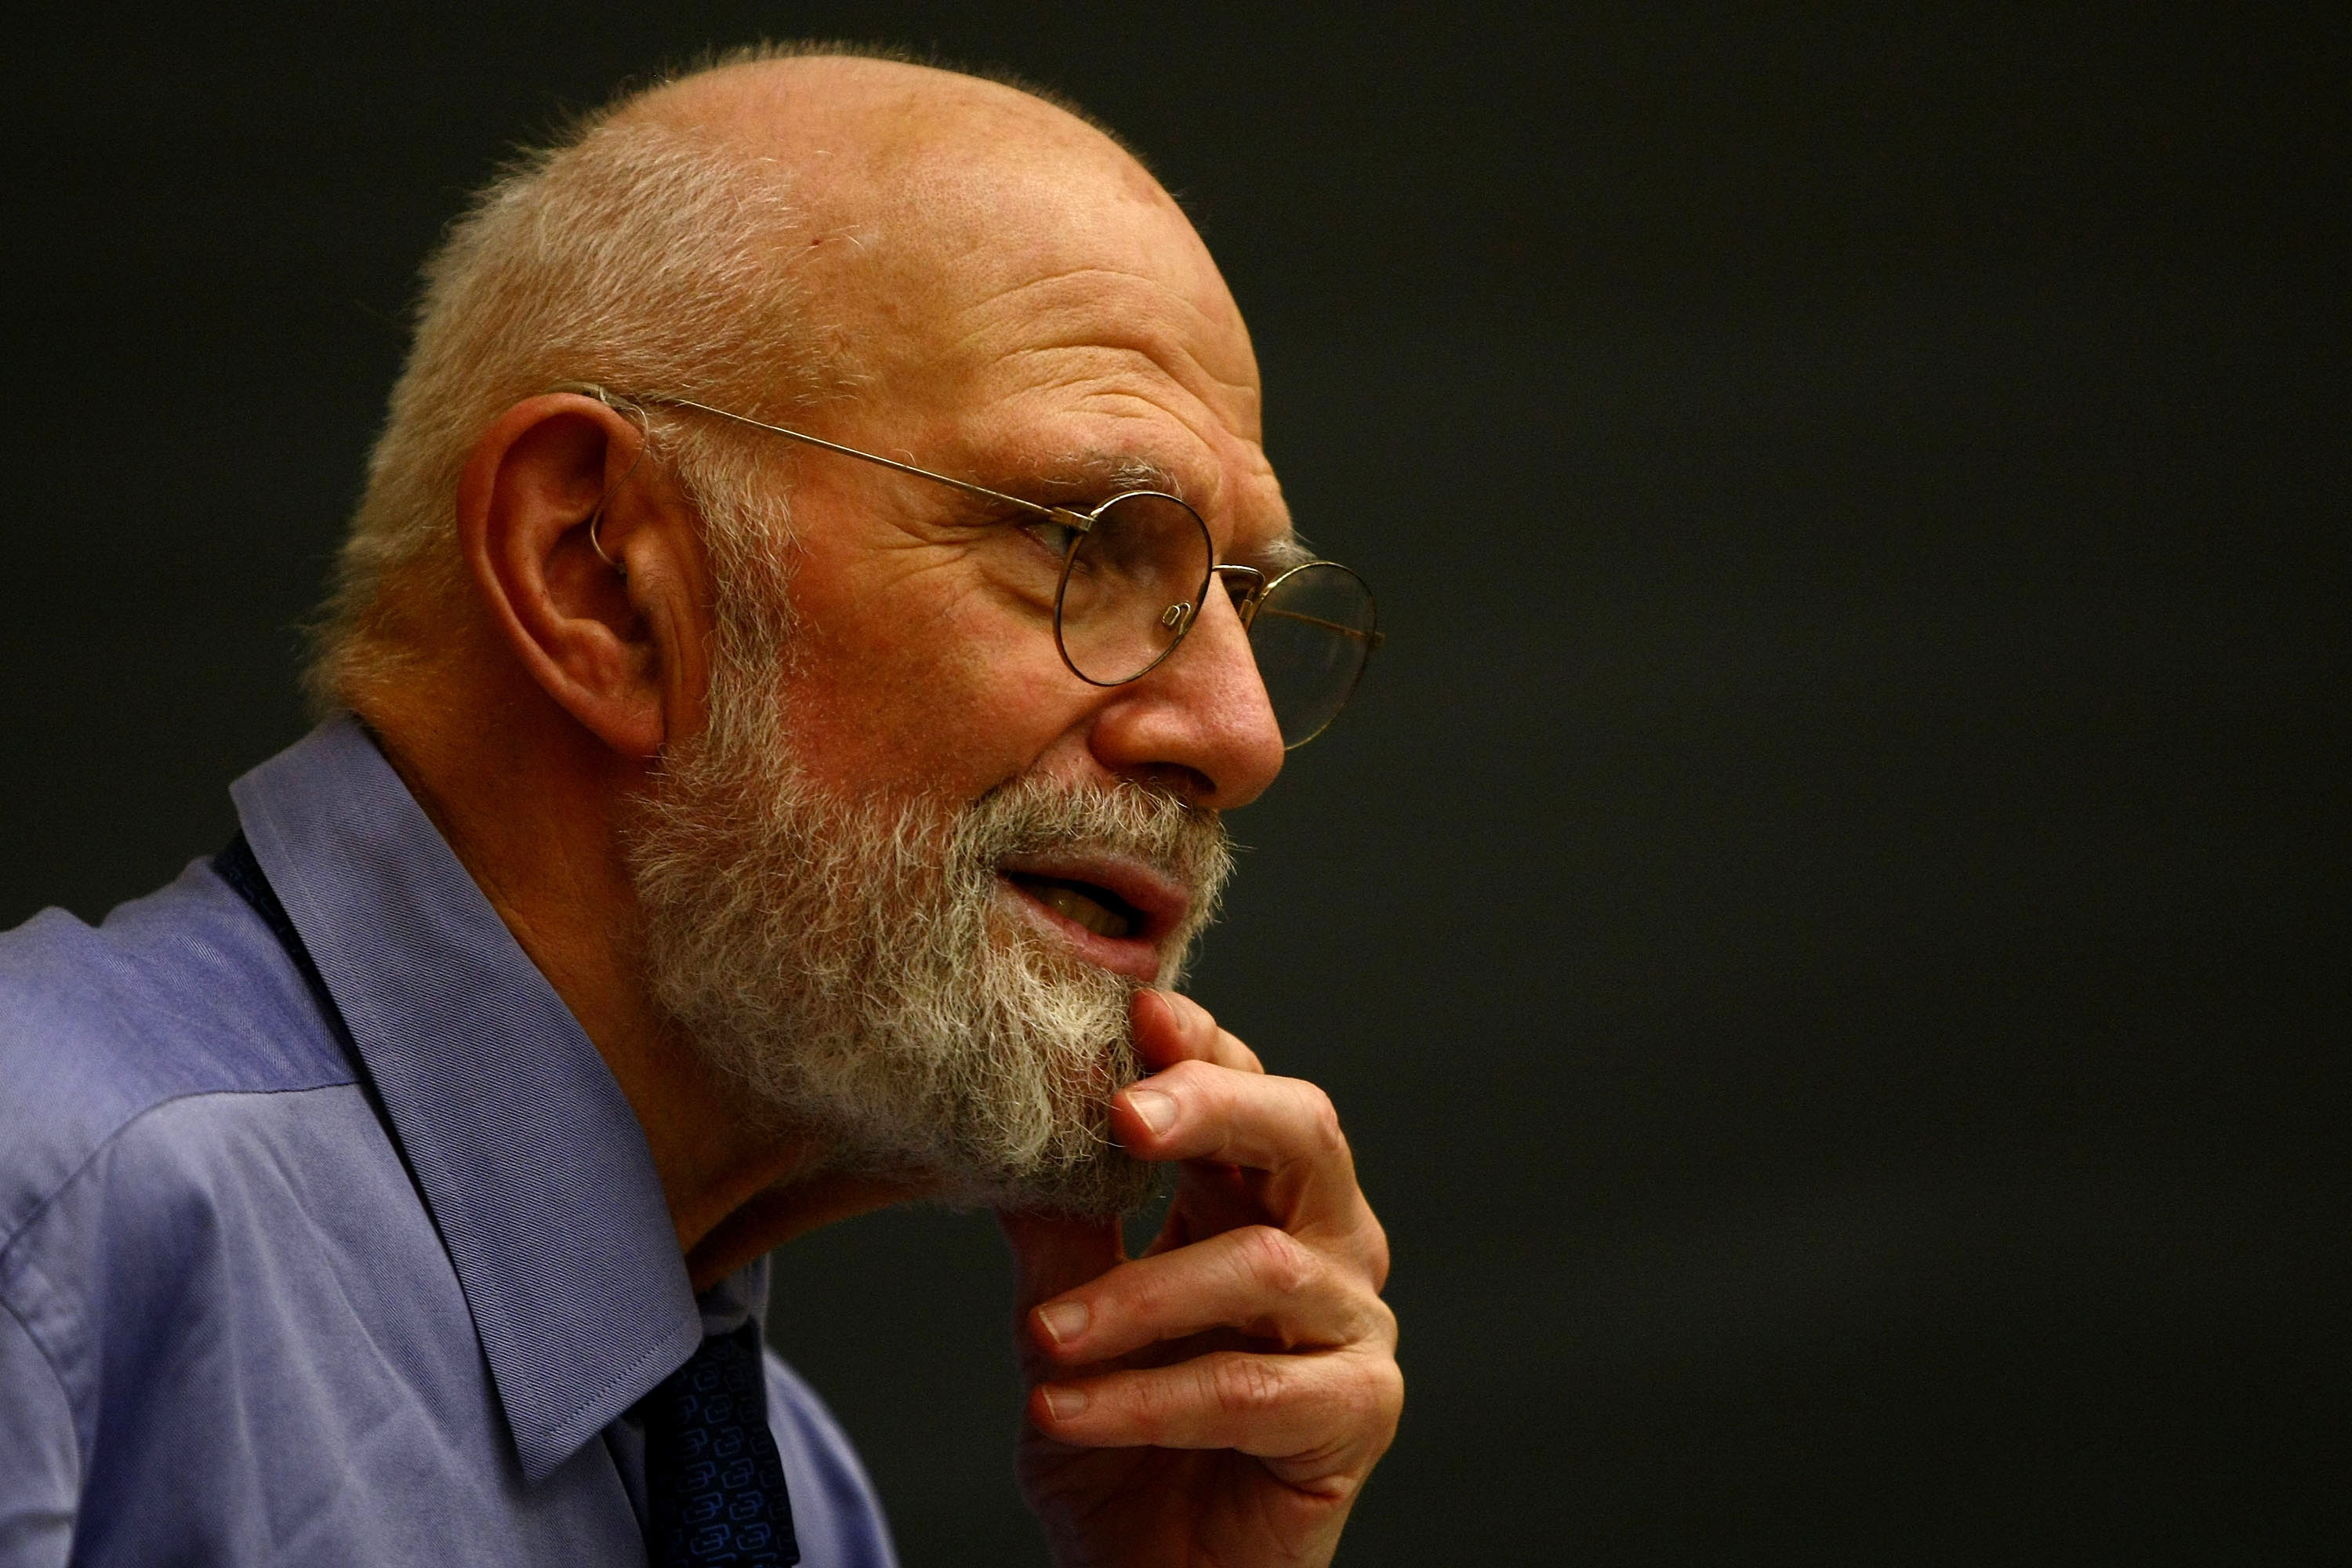 Chi era Oliver Sacks